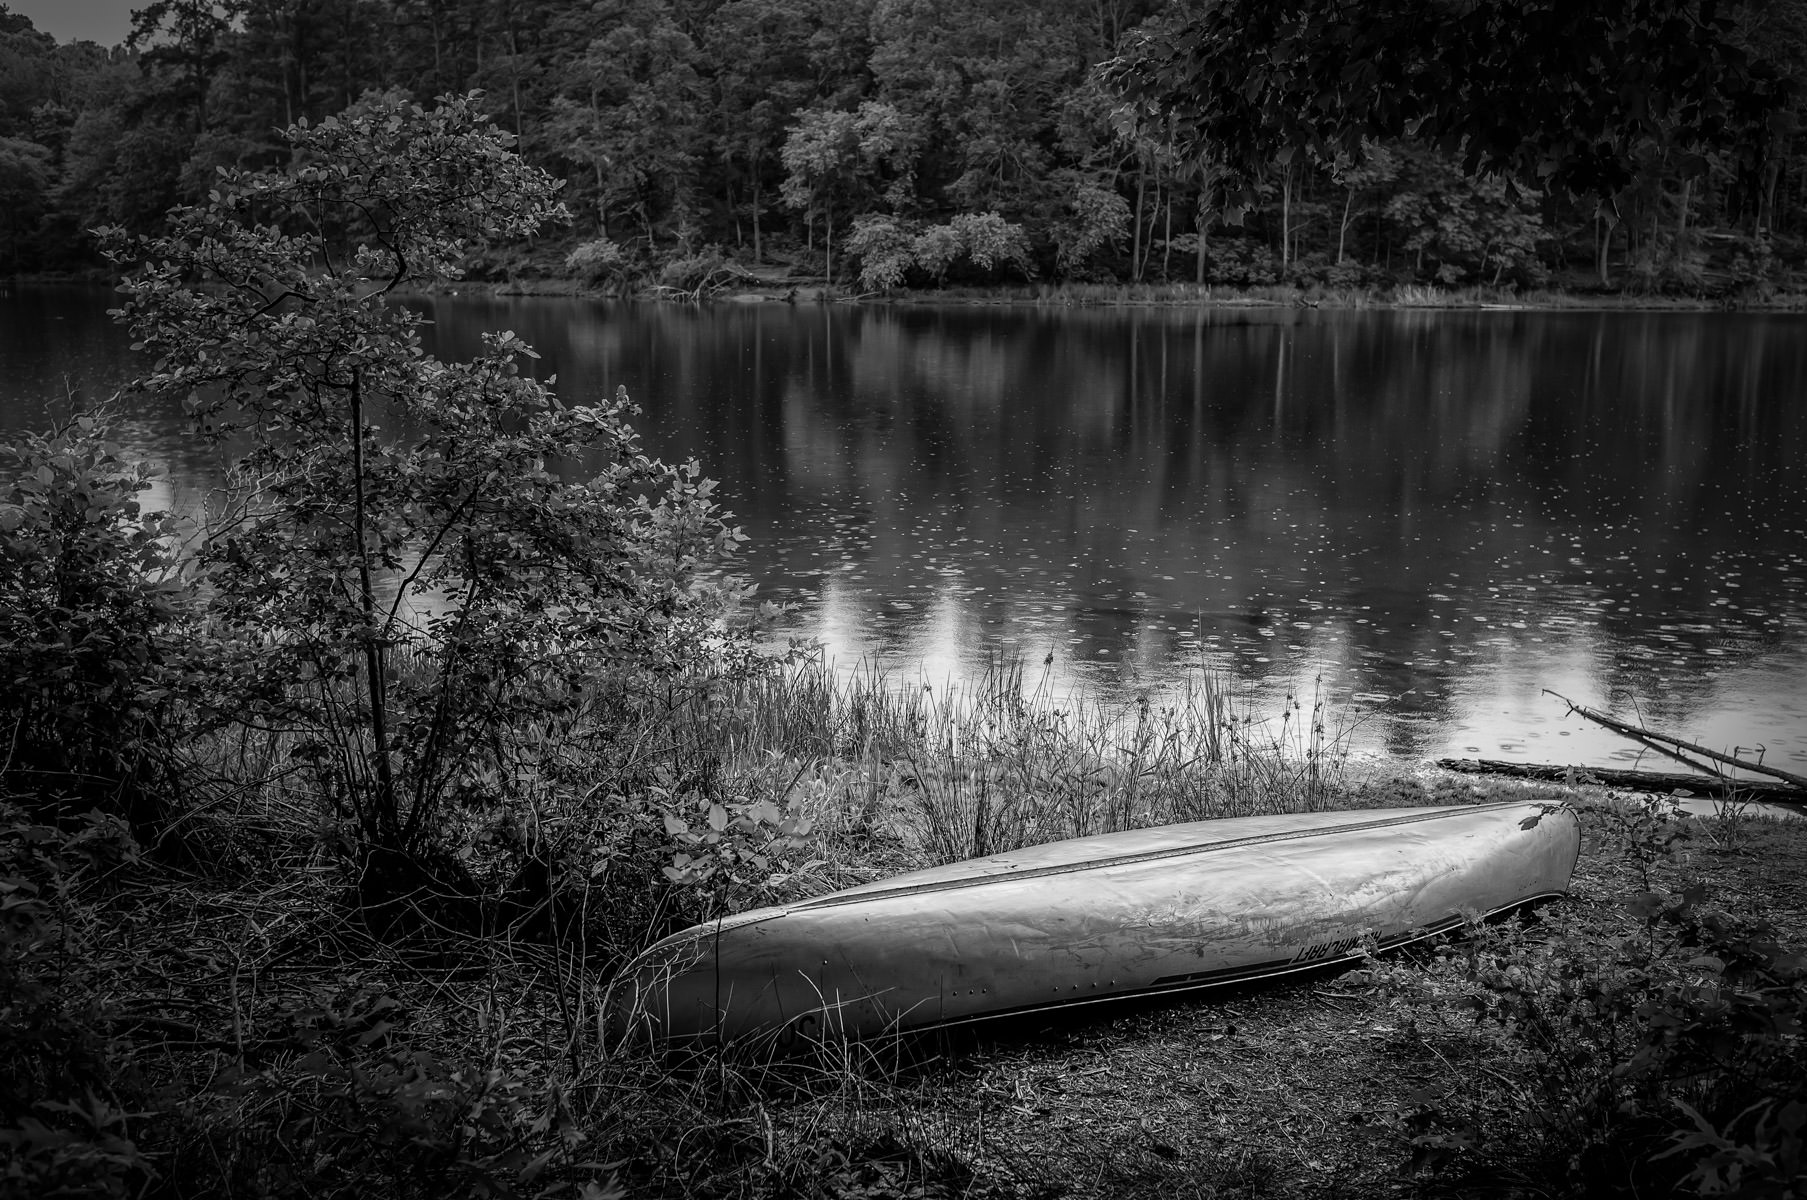 A canoe abandoned on the shore of the lake at Tyler State Park, Texas.